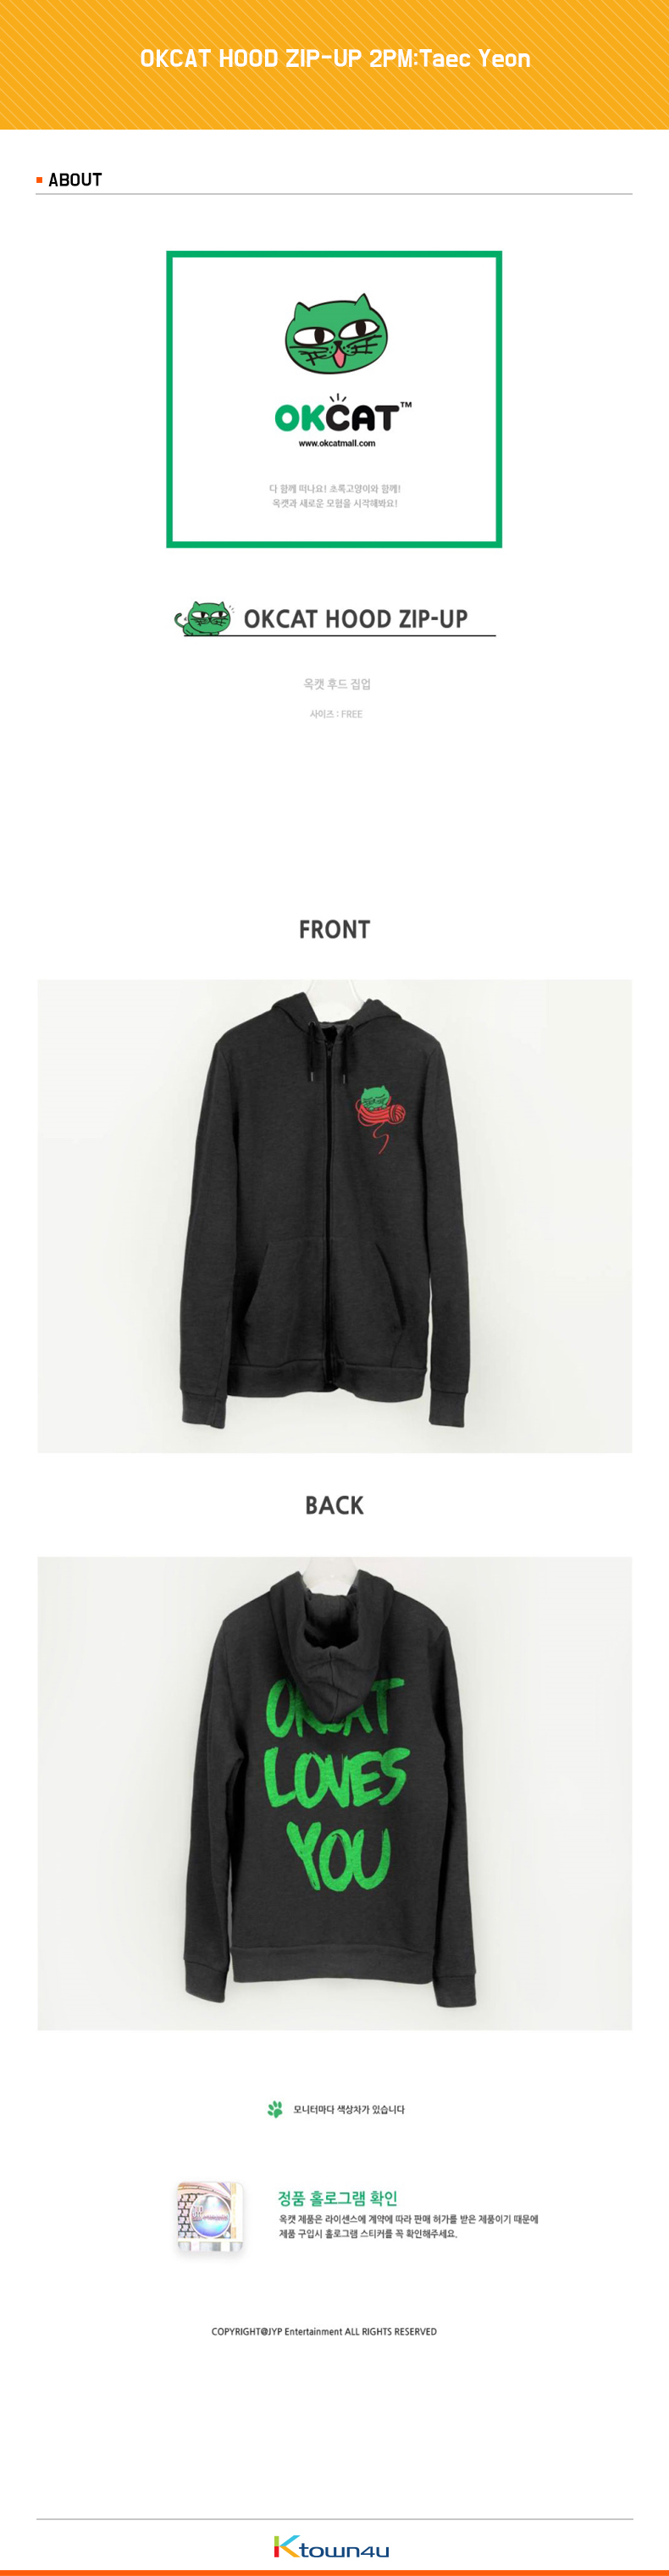 OKCAT HOOD ZIP-UP 2PM:Taec Yeon